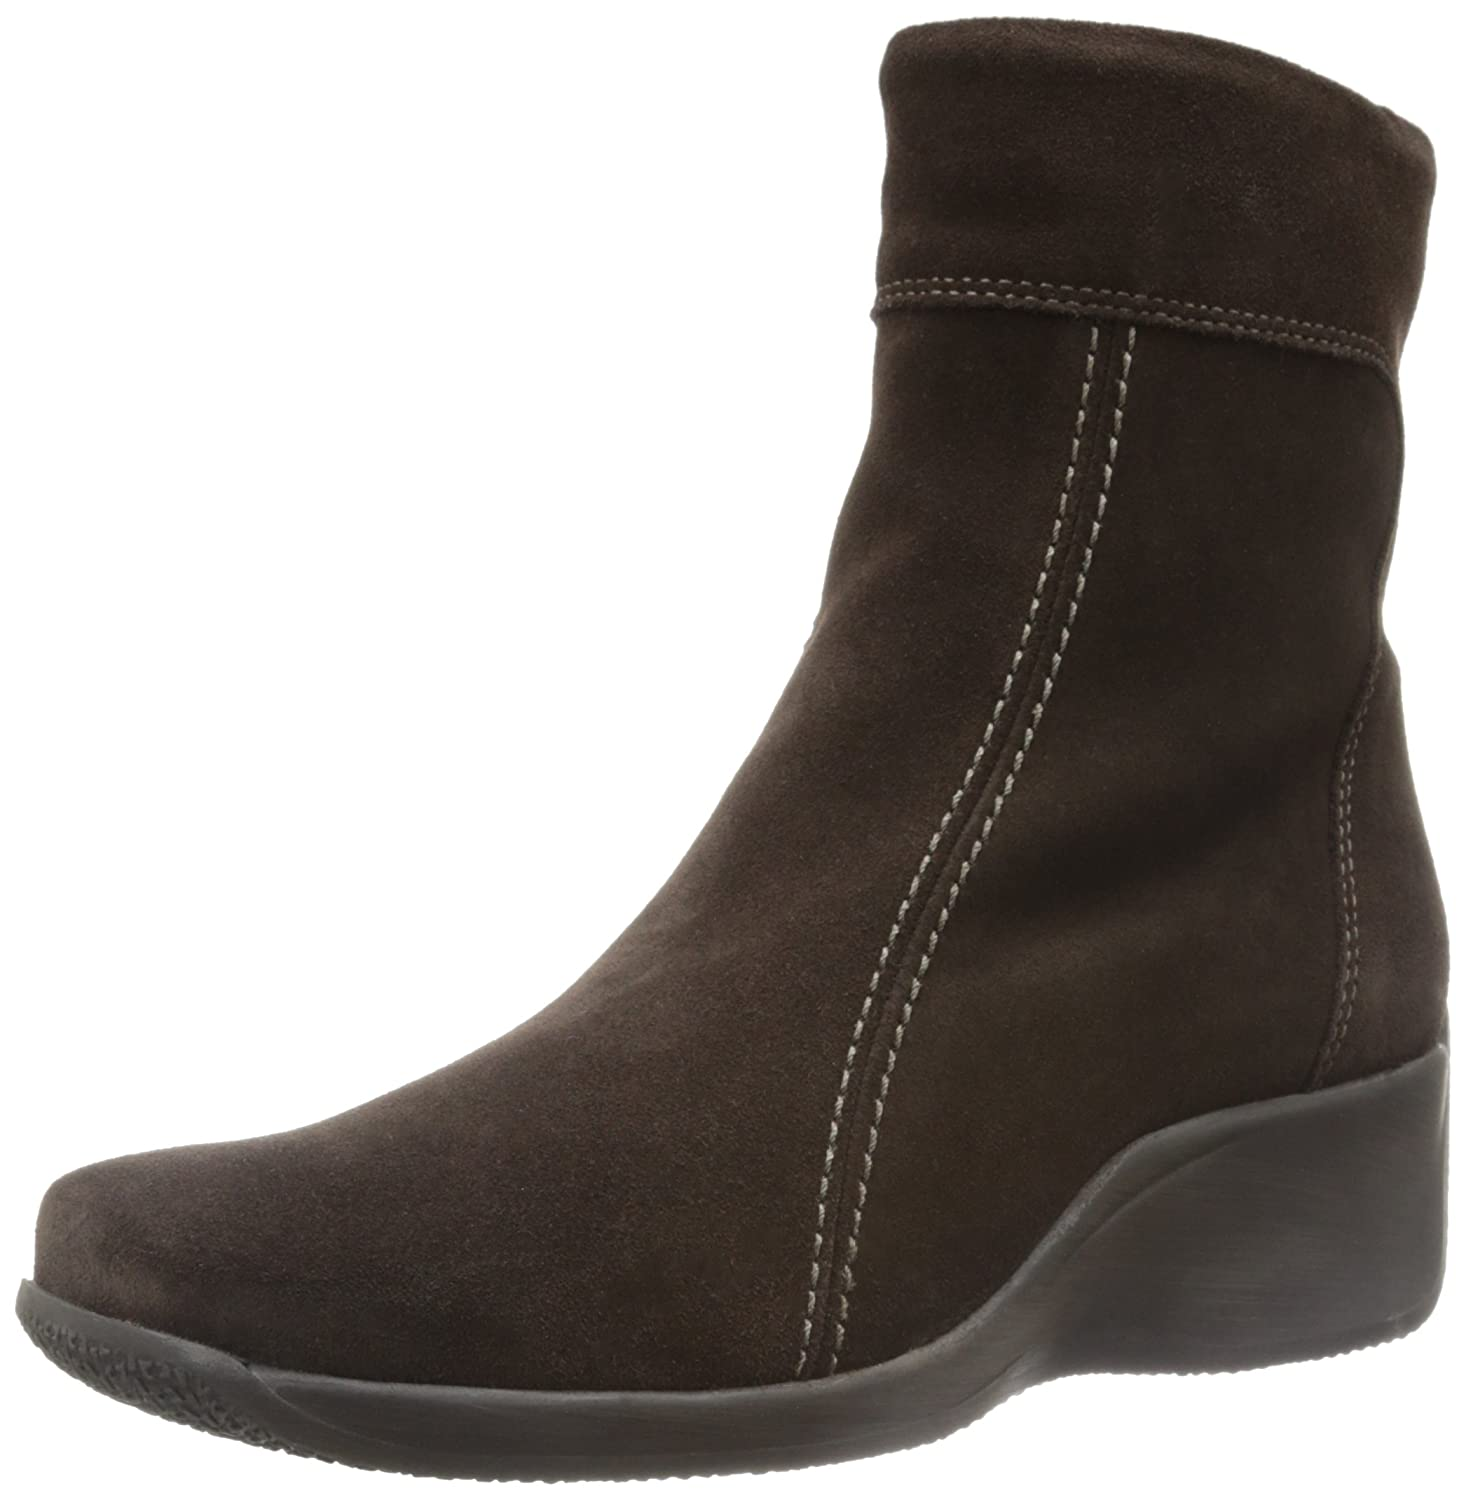 ankle saleecco leather online most boots comforter ecco the womens onlineofficially shoes black officially authorized comfortable sale p boot cow leatherecco felicia for